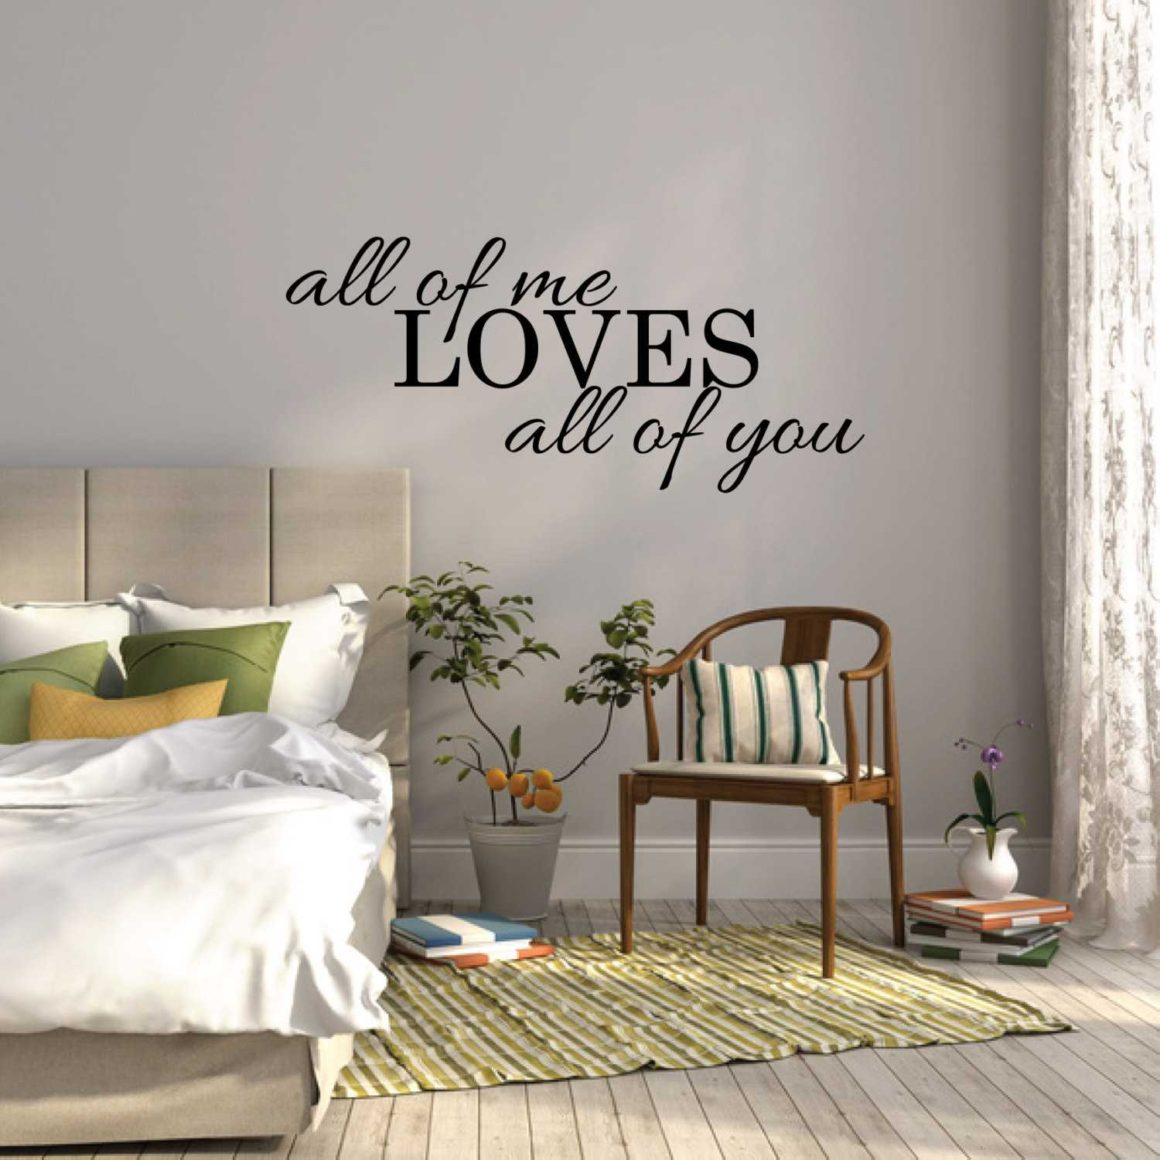 Fabulous Wall Decal Quotes Bedroom Living Room Decals Including Fabulous with regard to Living Room Decals